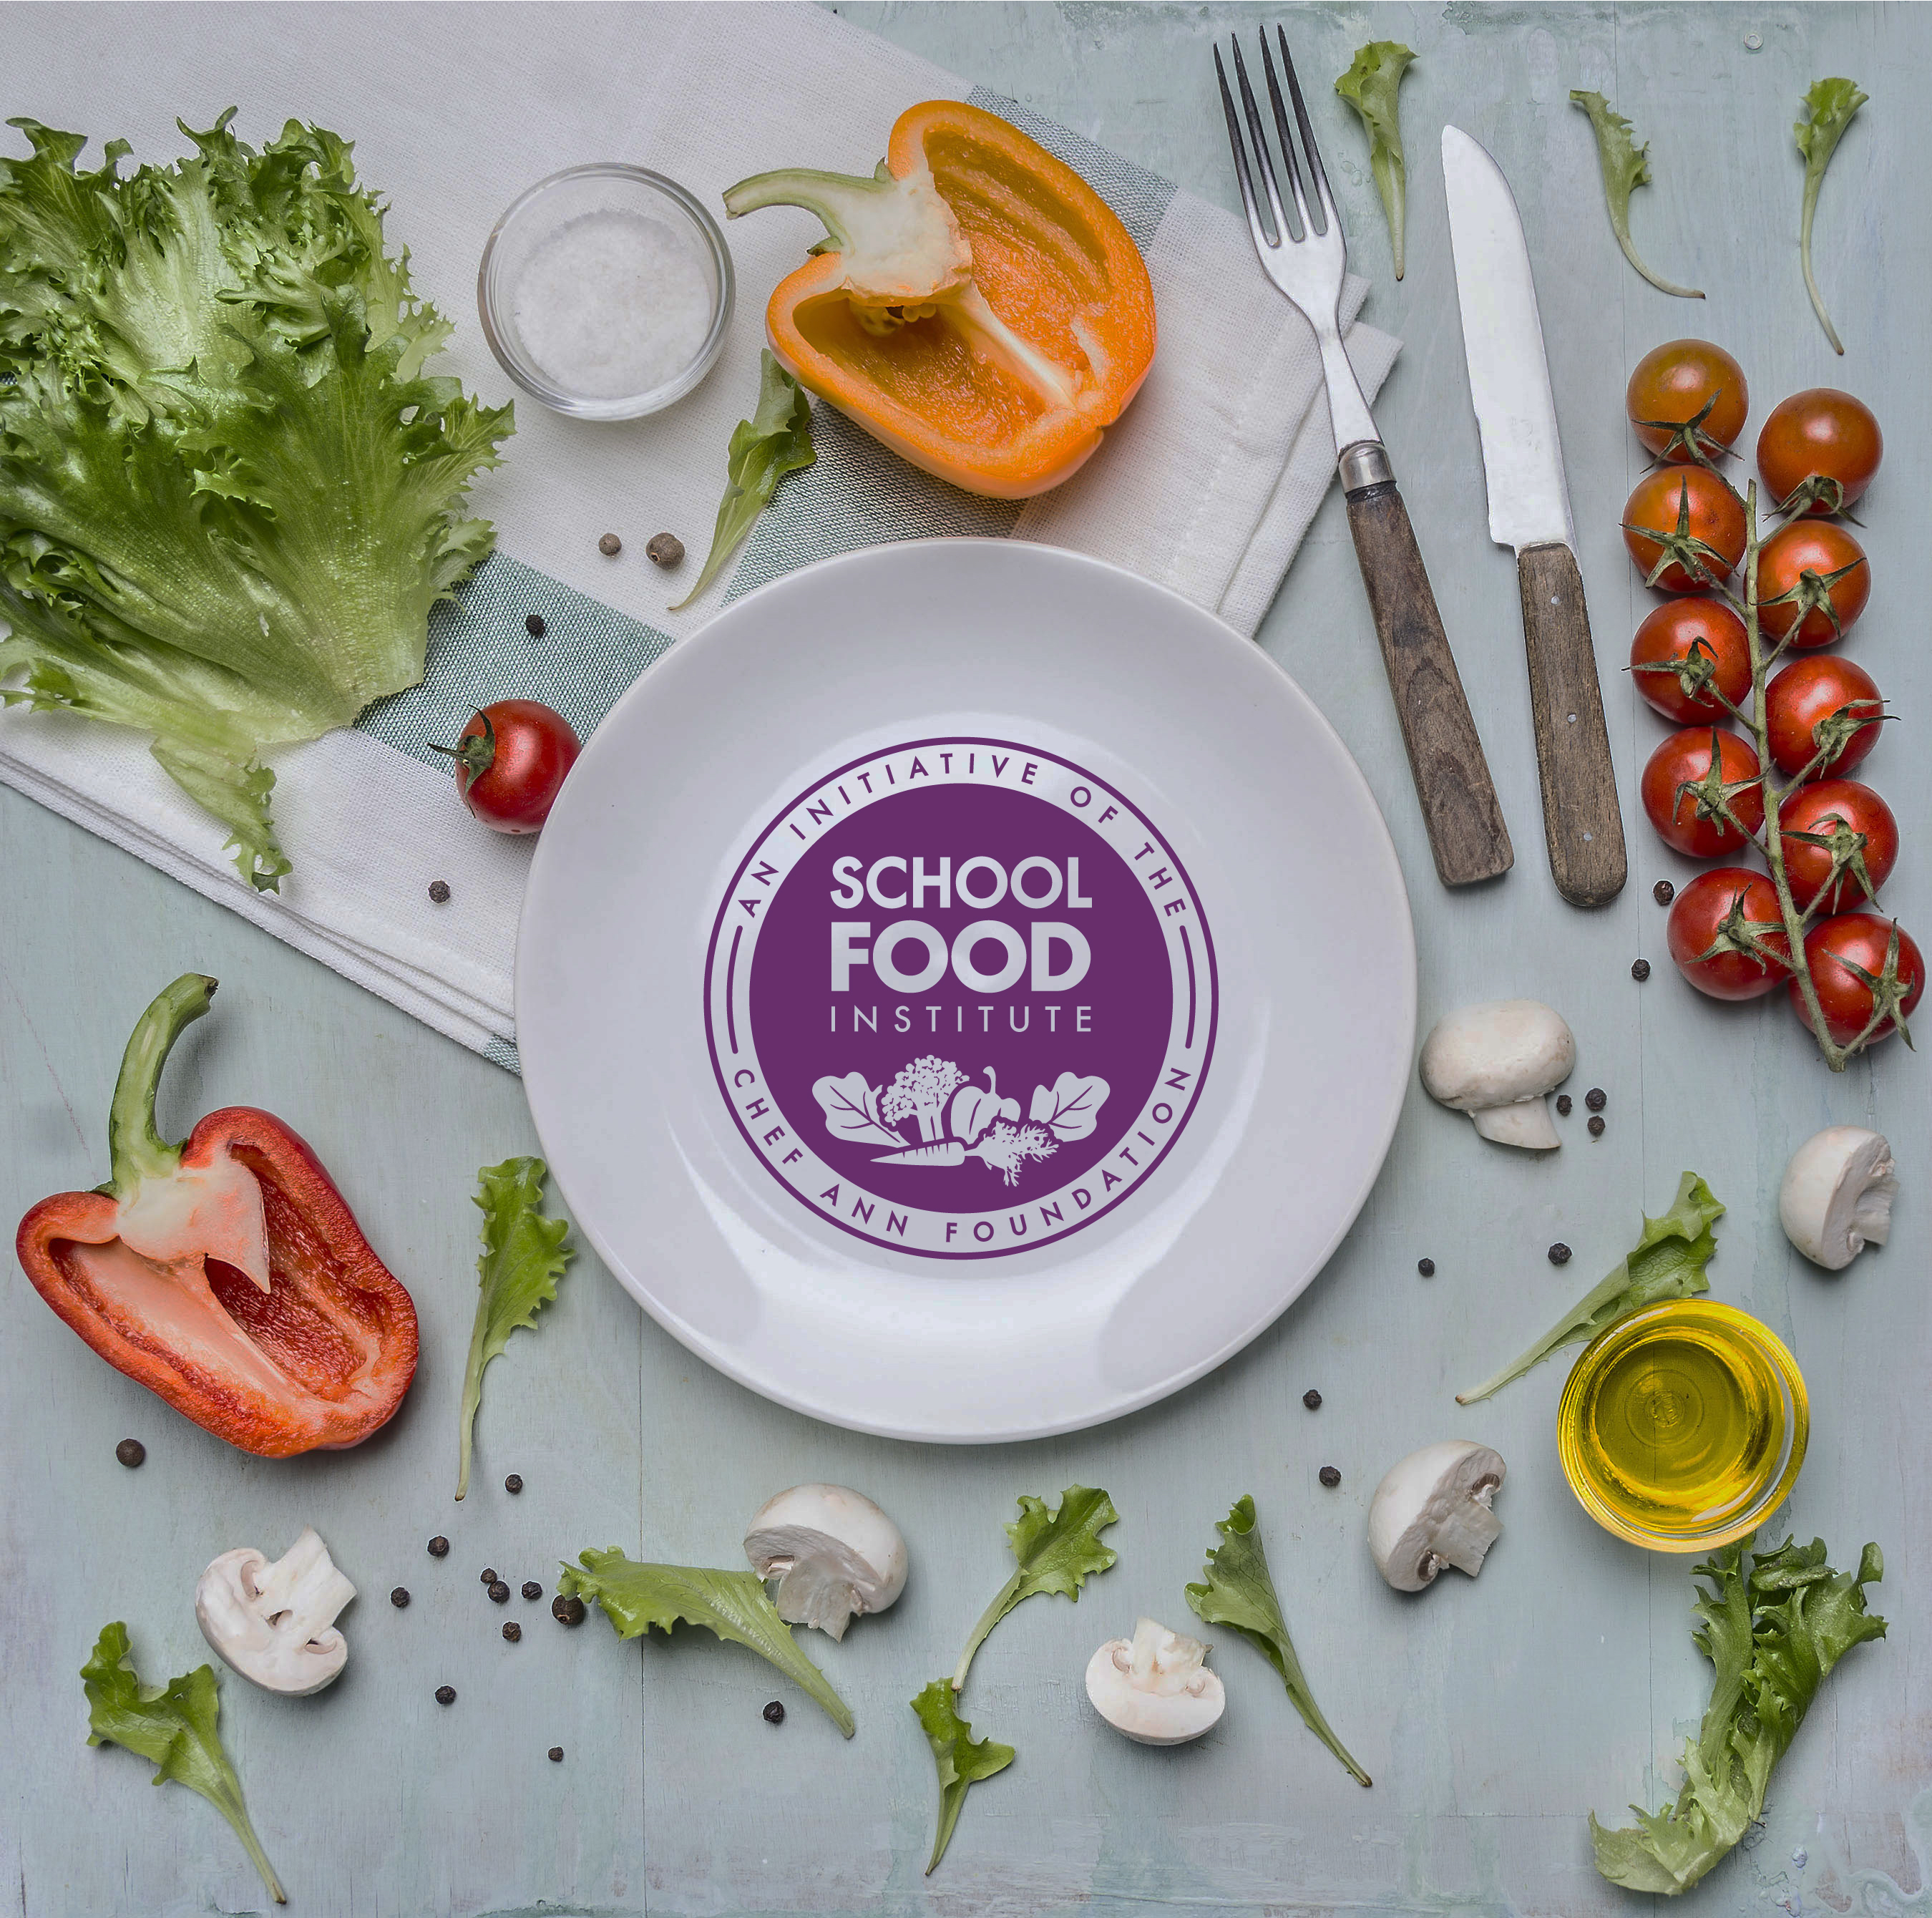 food school logo on plate